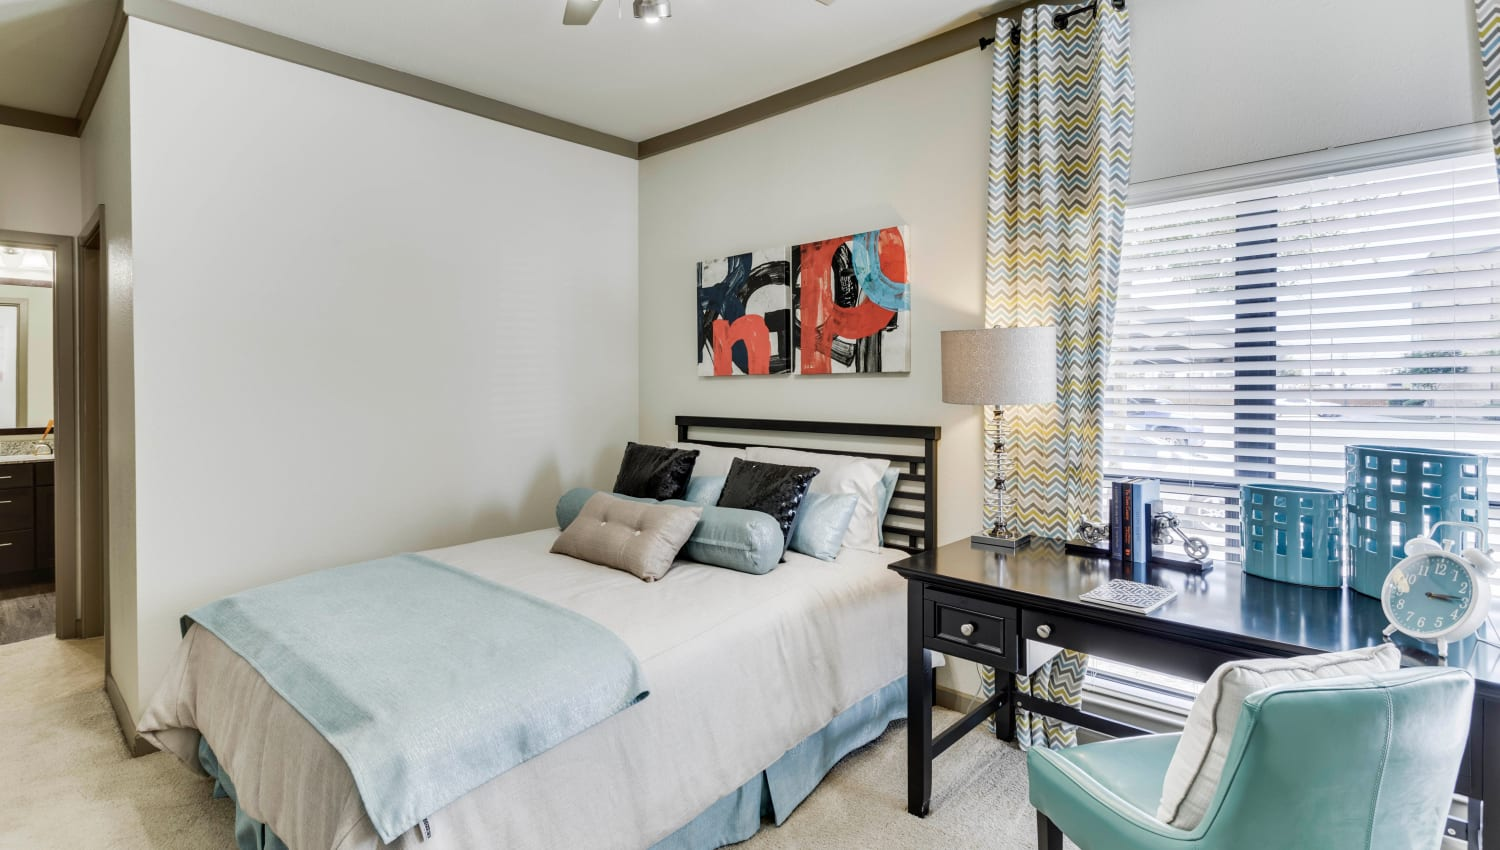 Well-furnished master bedroom with plush carpeting in a model apartment at Tacara at Westover Hills in San Antonio, Texas